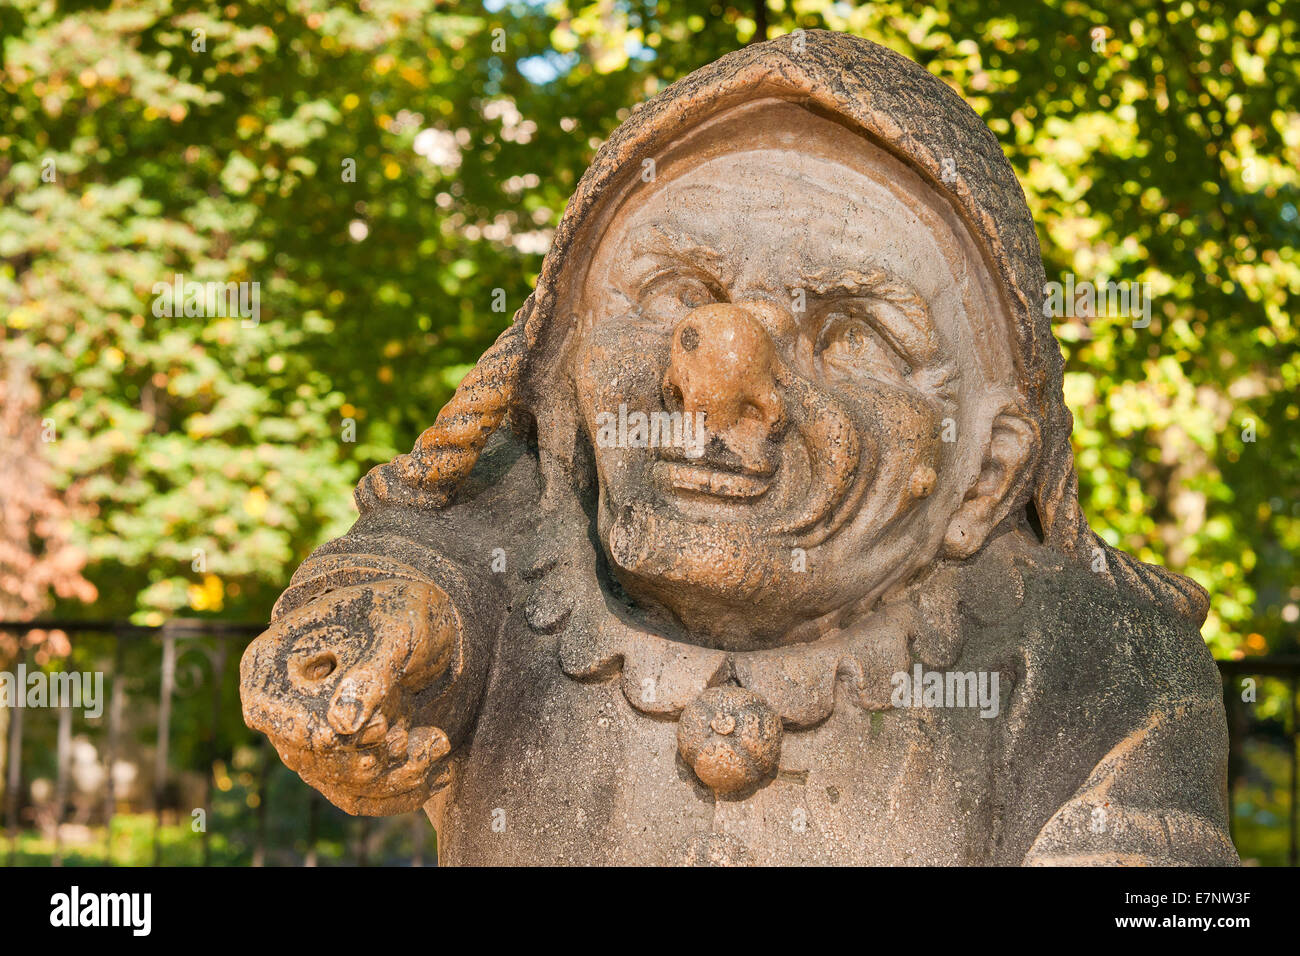 Midget Dwarf Stock Photos & Midget Dwarf Stock Images - Page 10 - Alamy